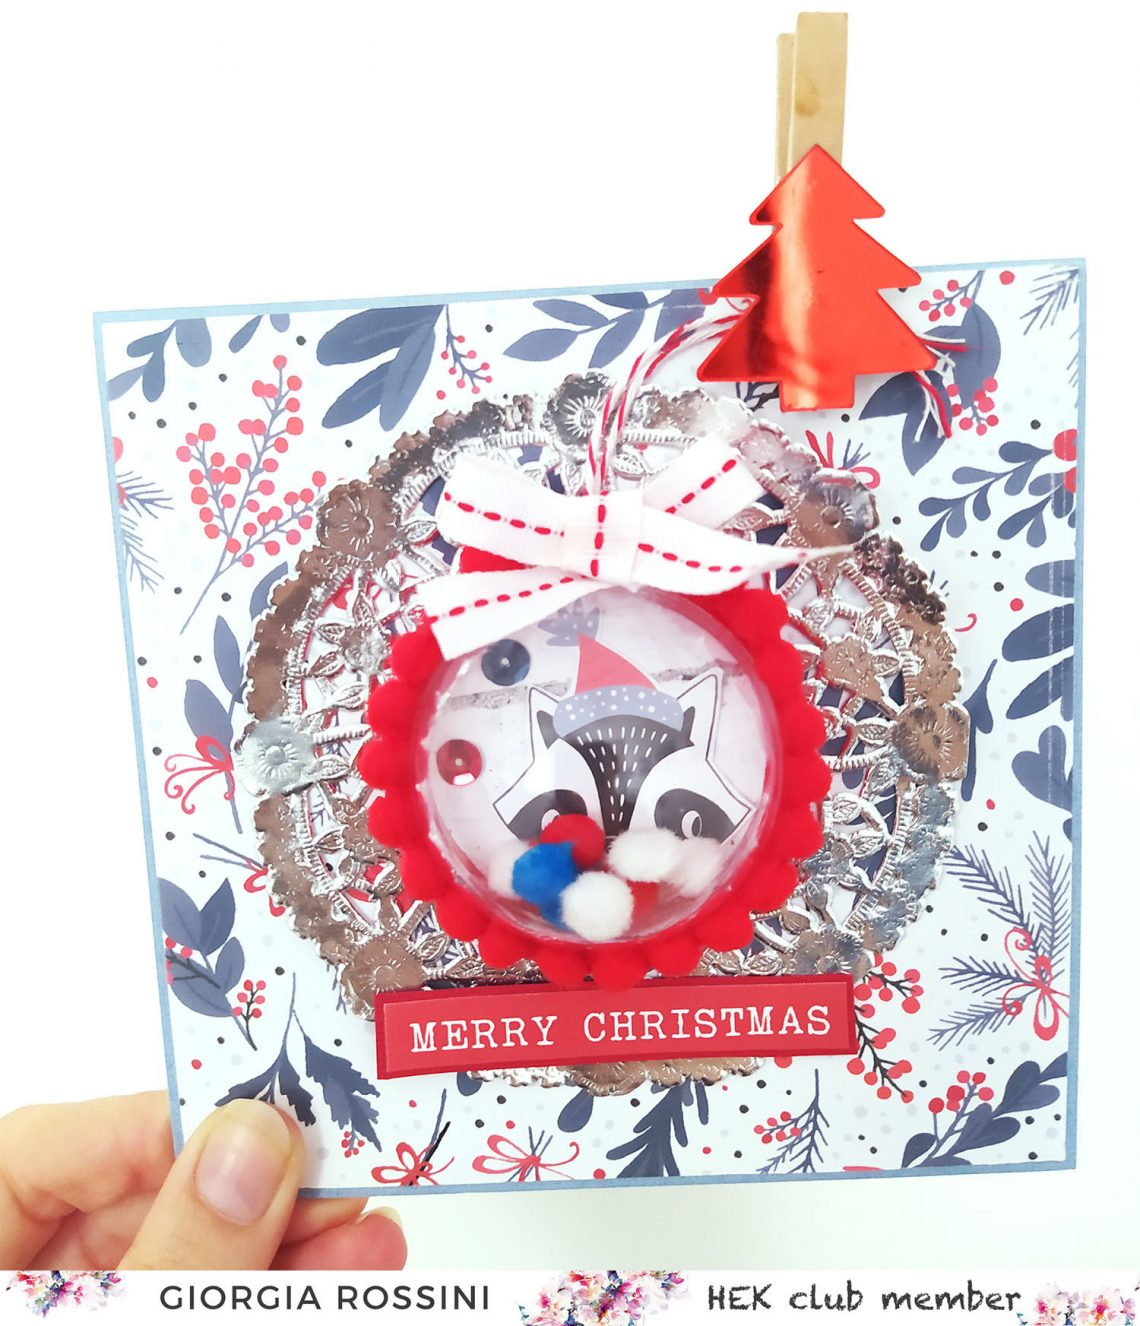 HEK Club – Christmas card with removable shaker ornament